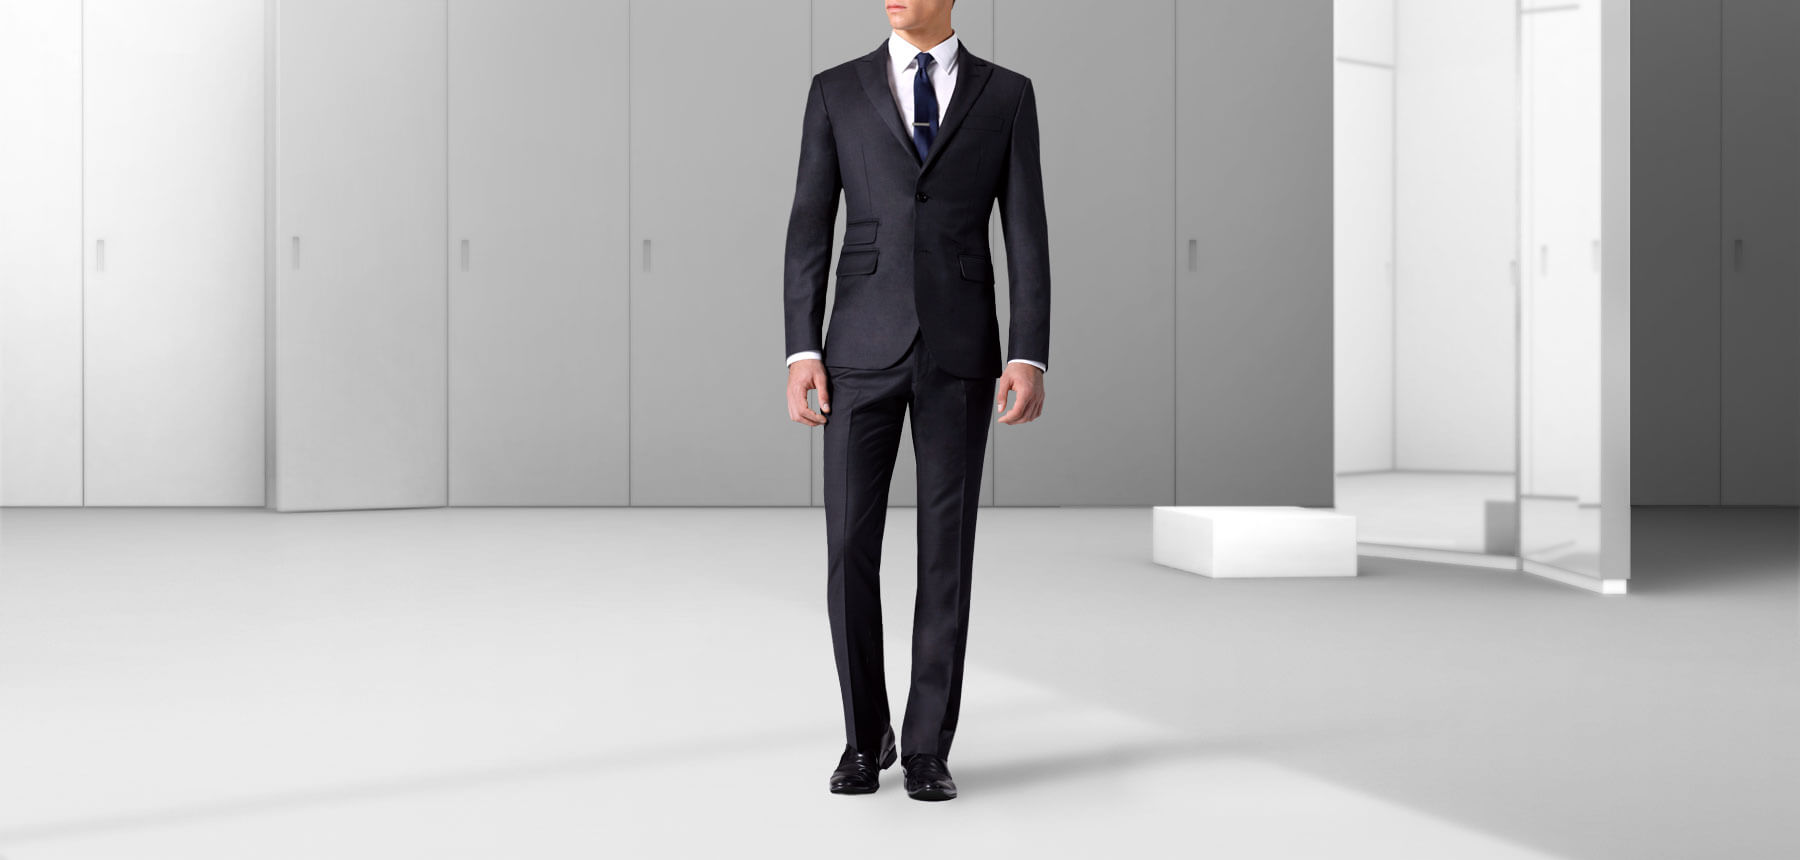 Get a Suit with a Tailored Fit - Do it at Home in 10 Minutes